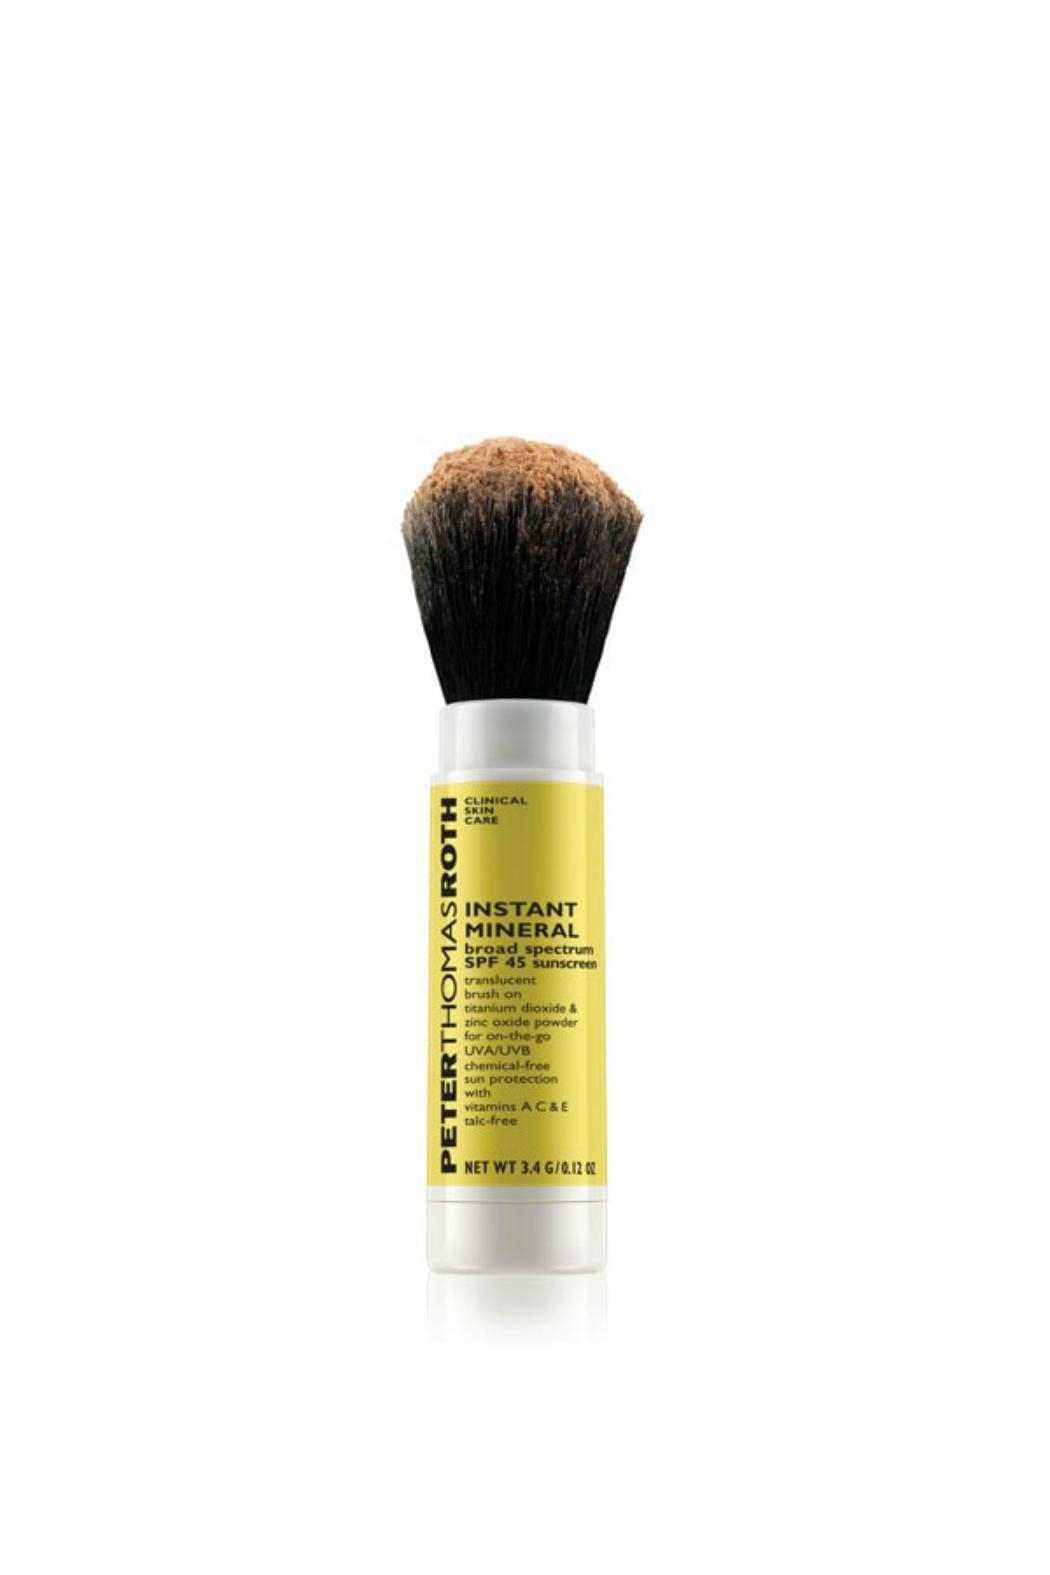 Peter Thomas Roth Instant Mineral Spf45 - Main Image